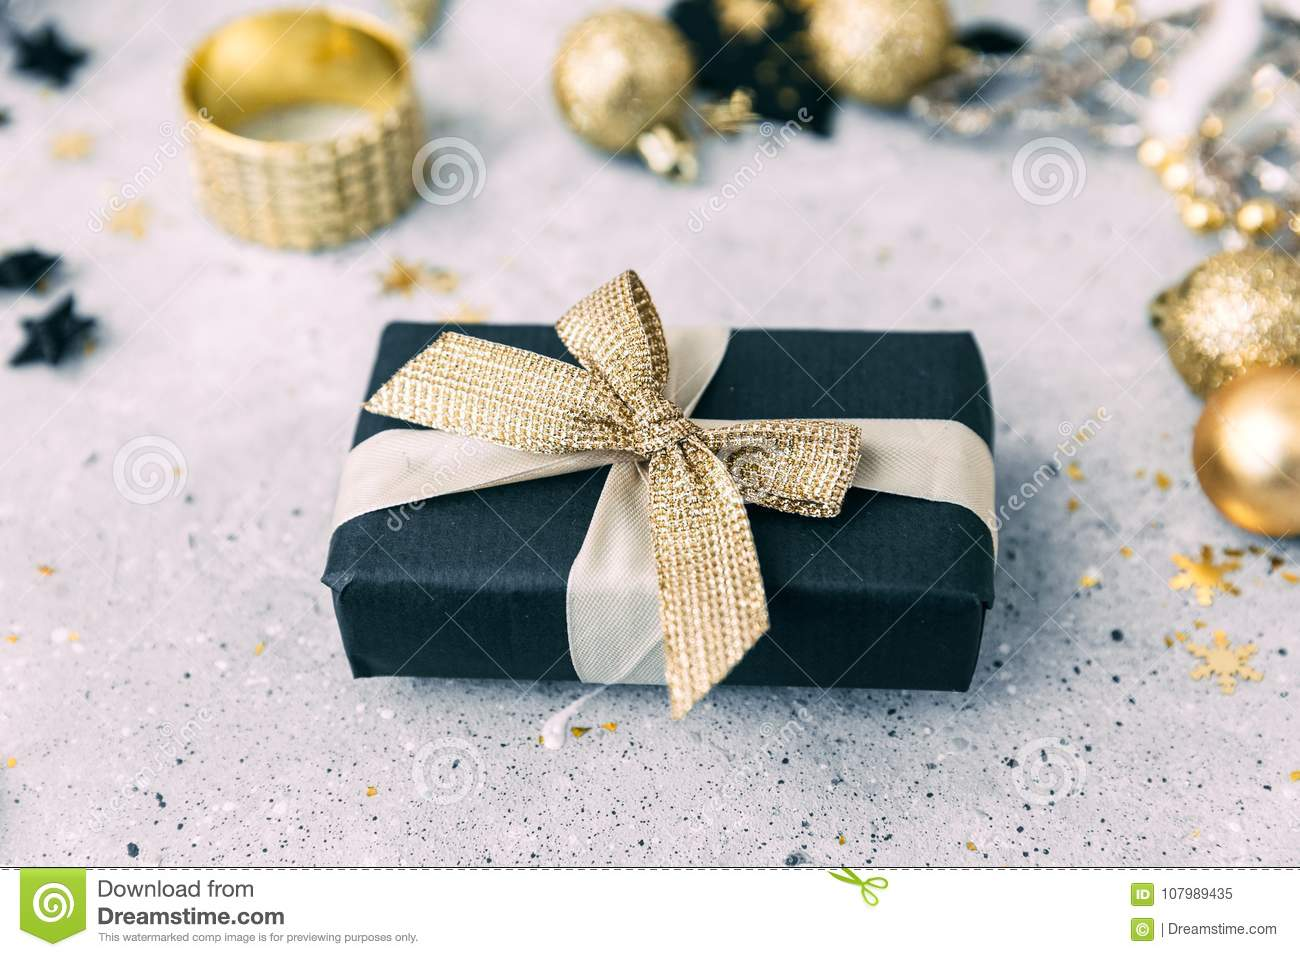 Black And Gold Christmas Decorations Stock Image Image Of Blur